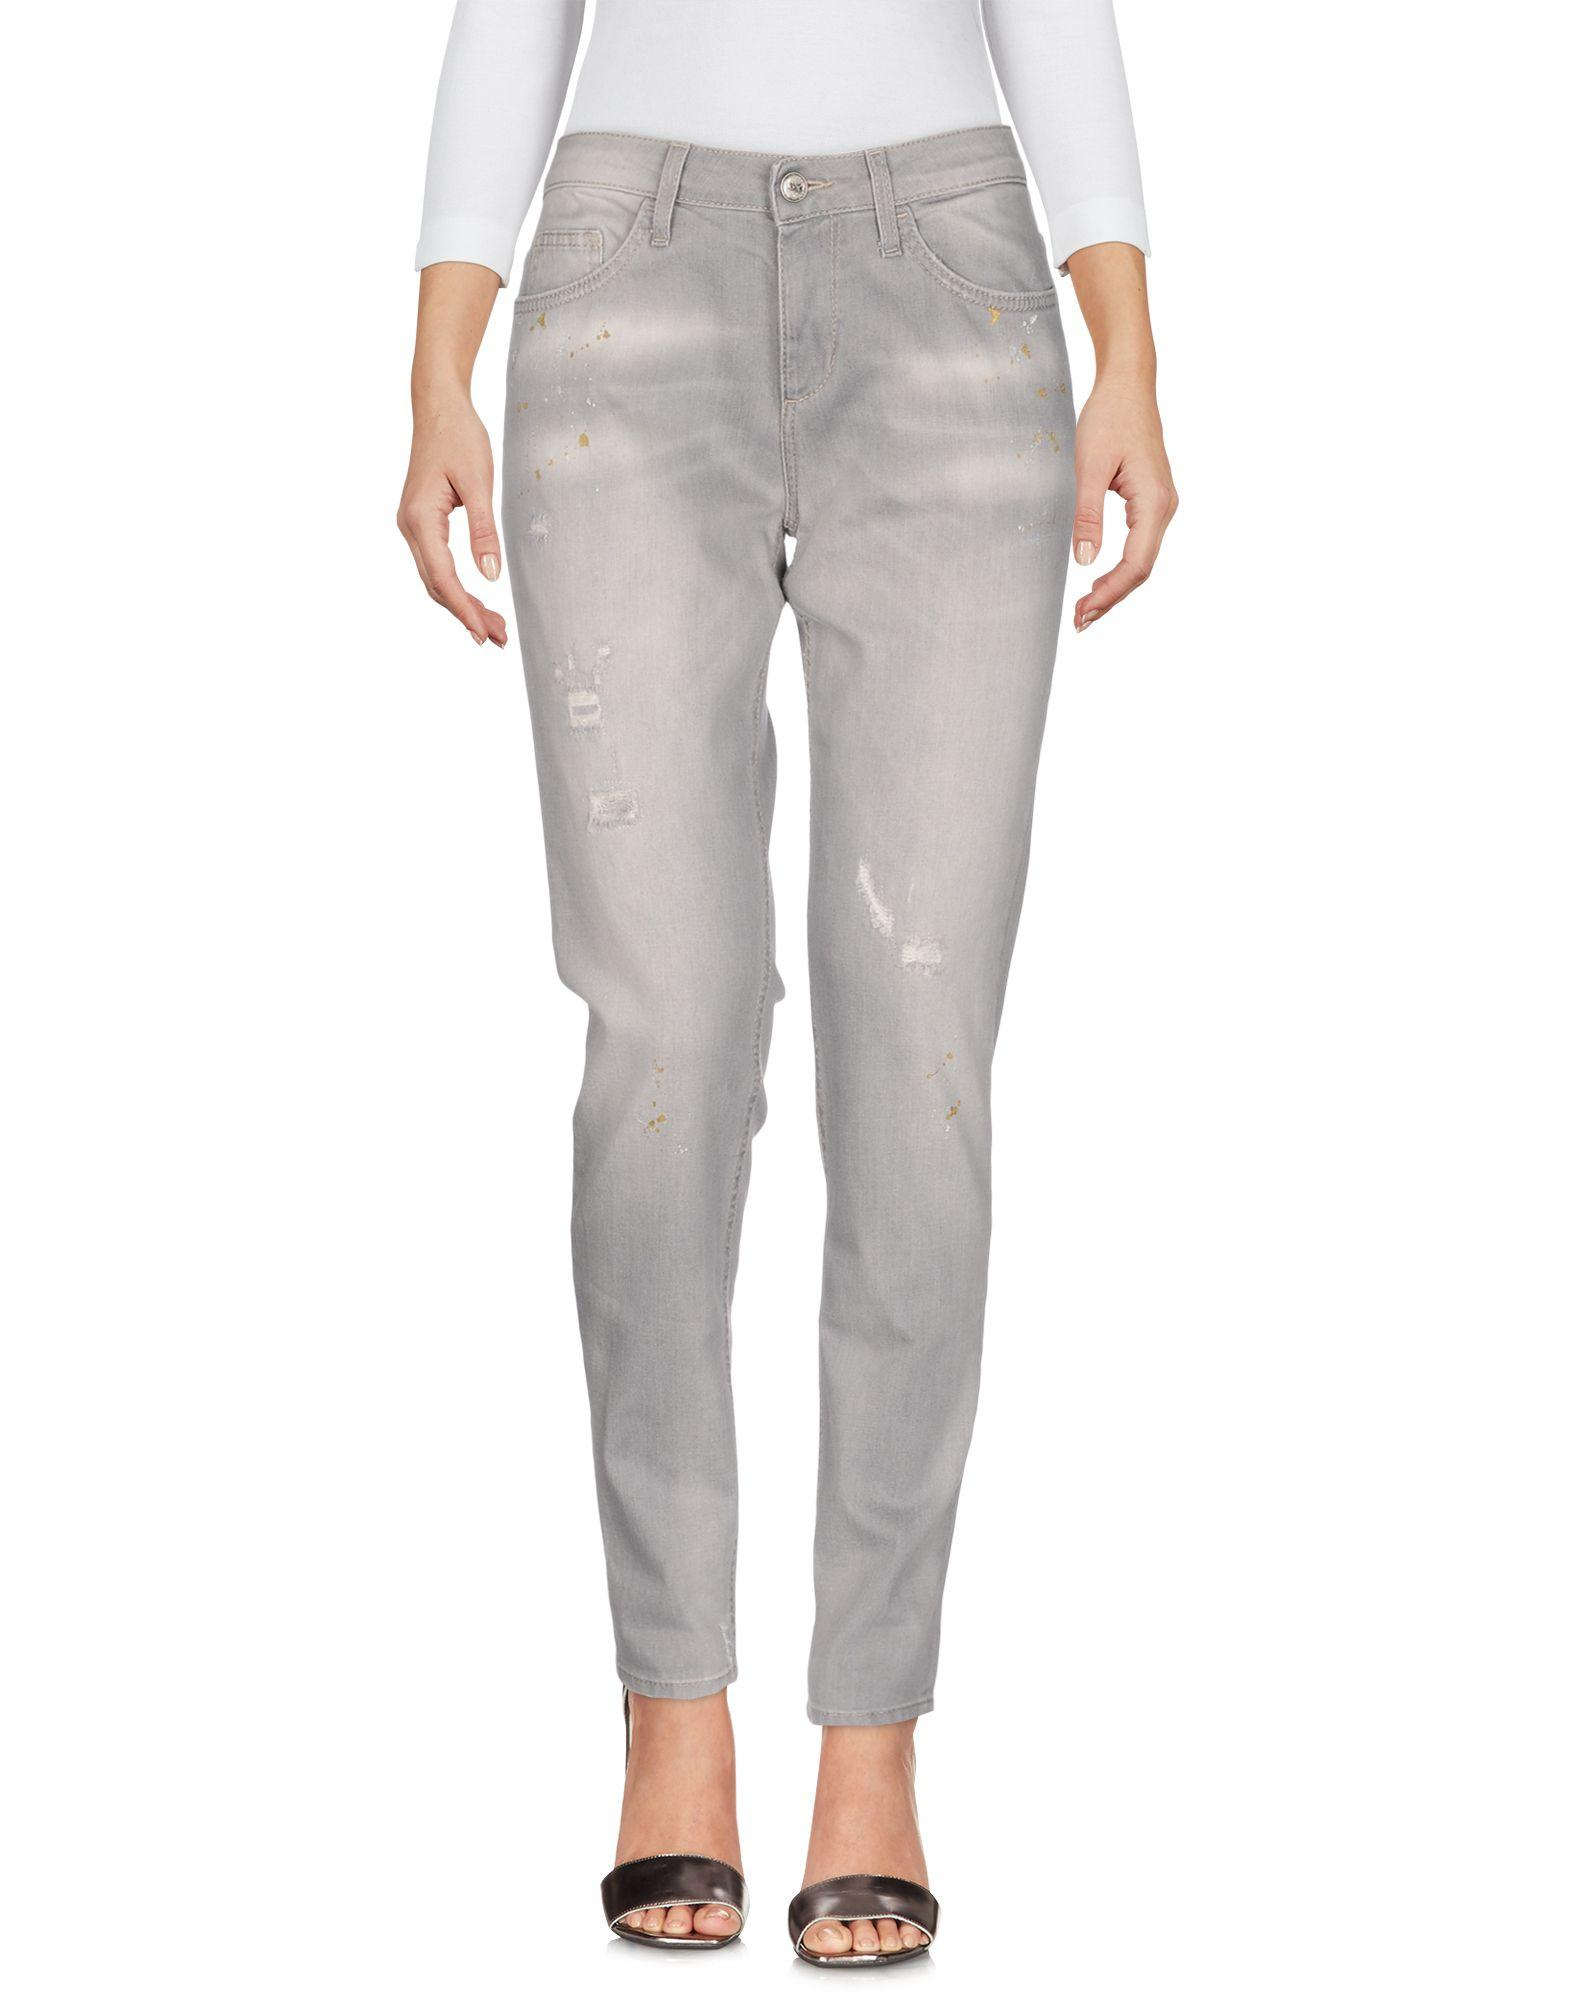 Liu •jo Denim Pants In Grey